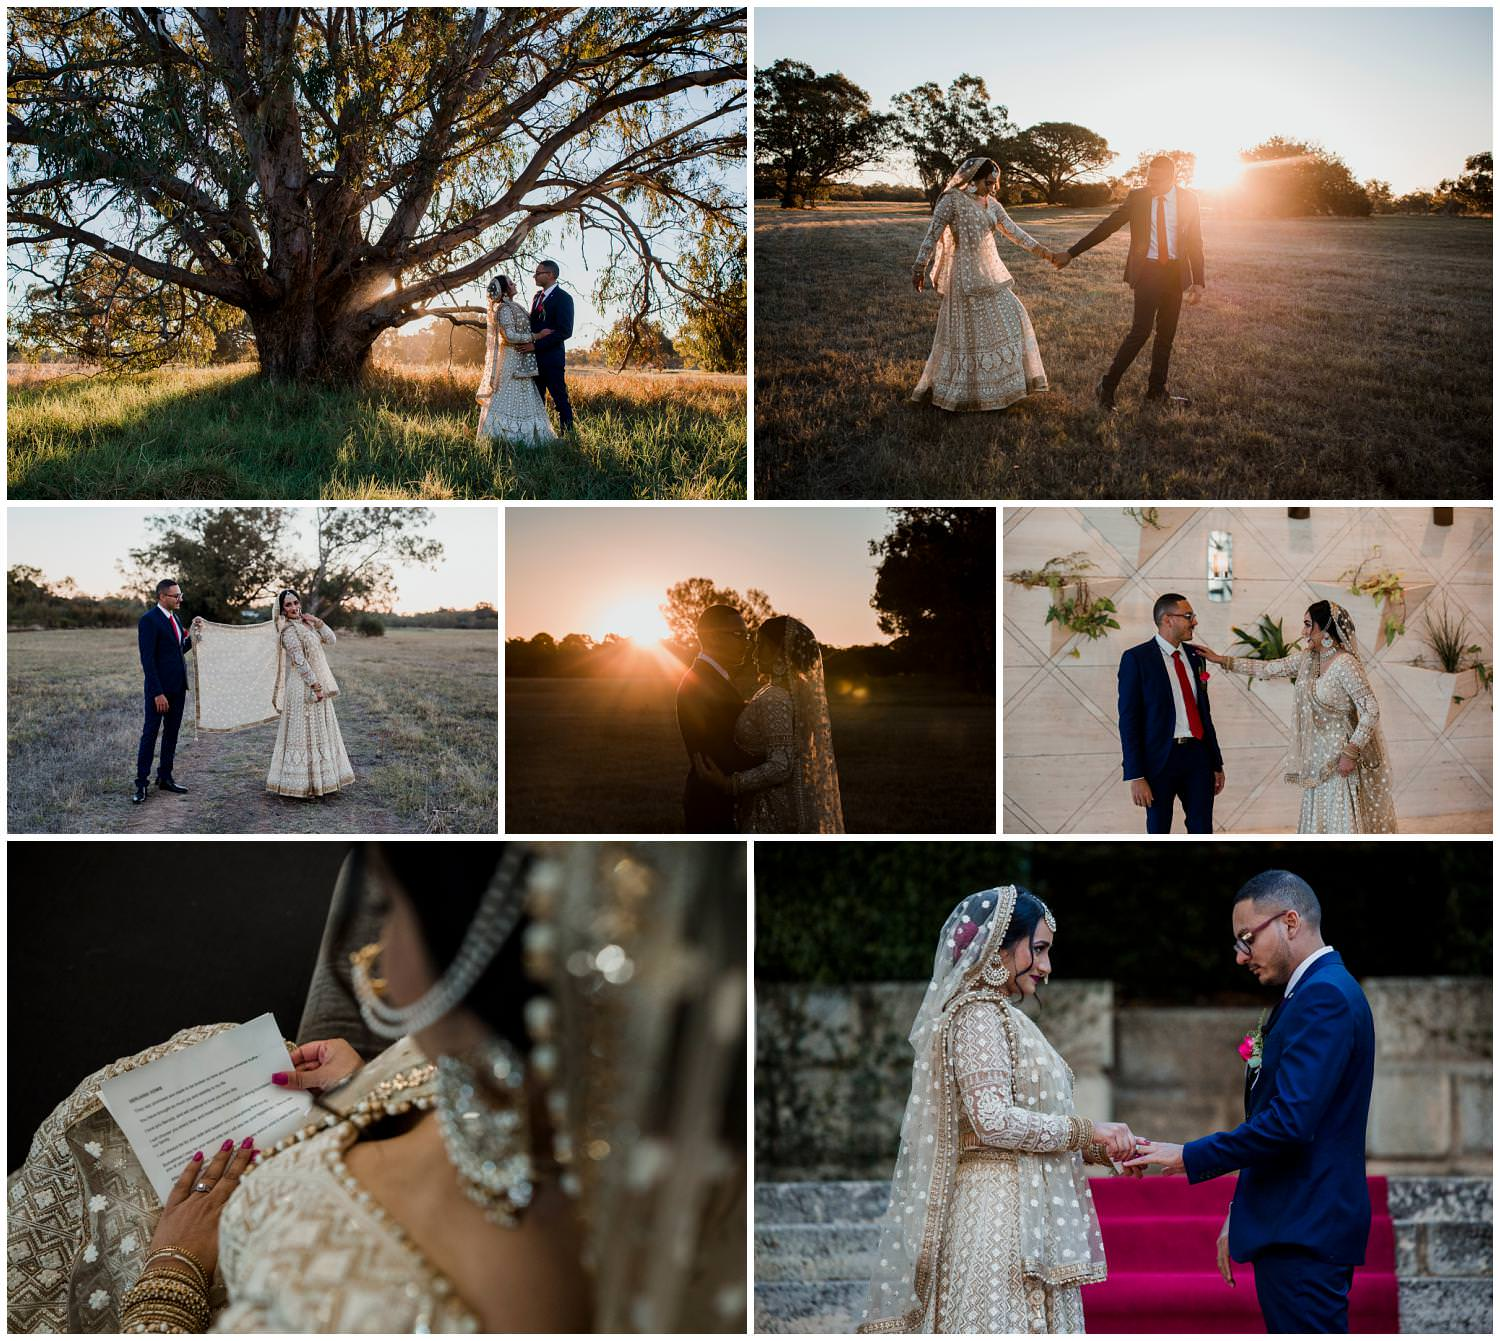 Jean-Paul + Serjana - Caversham House Wedding